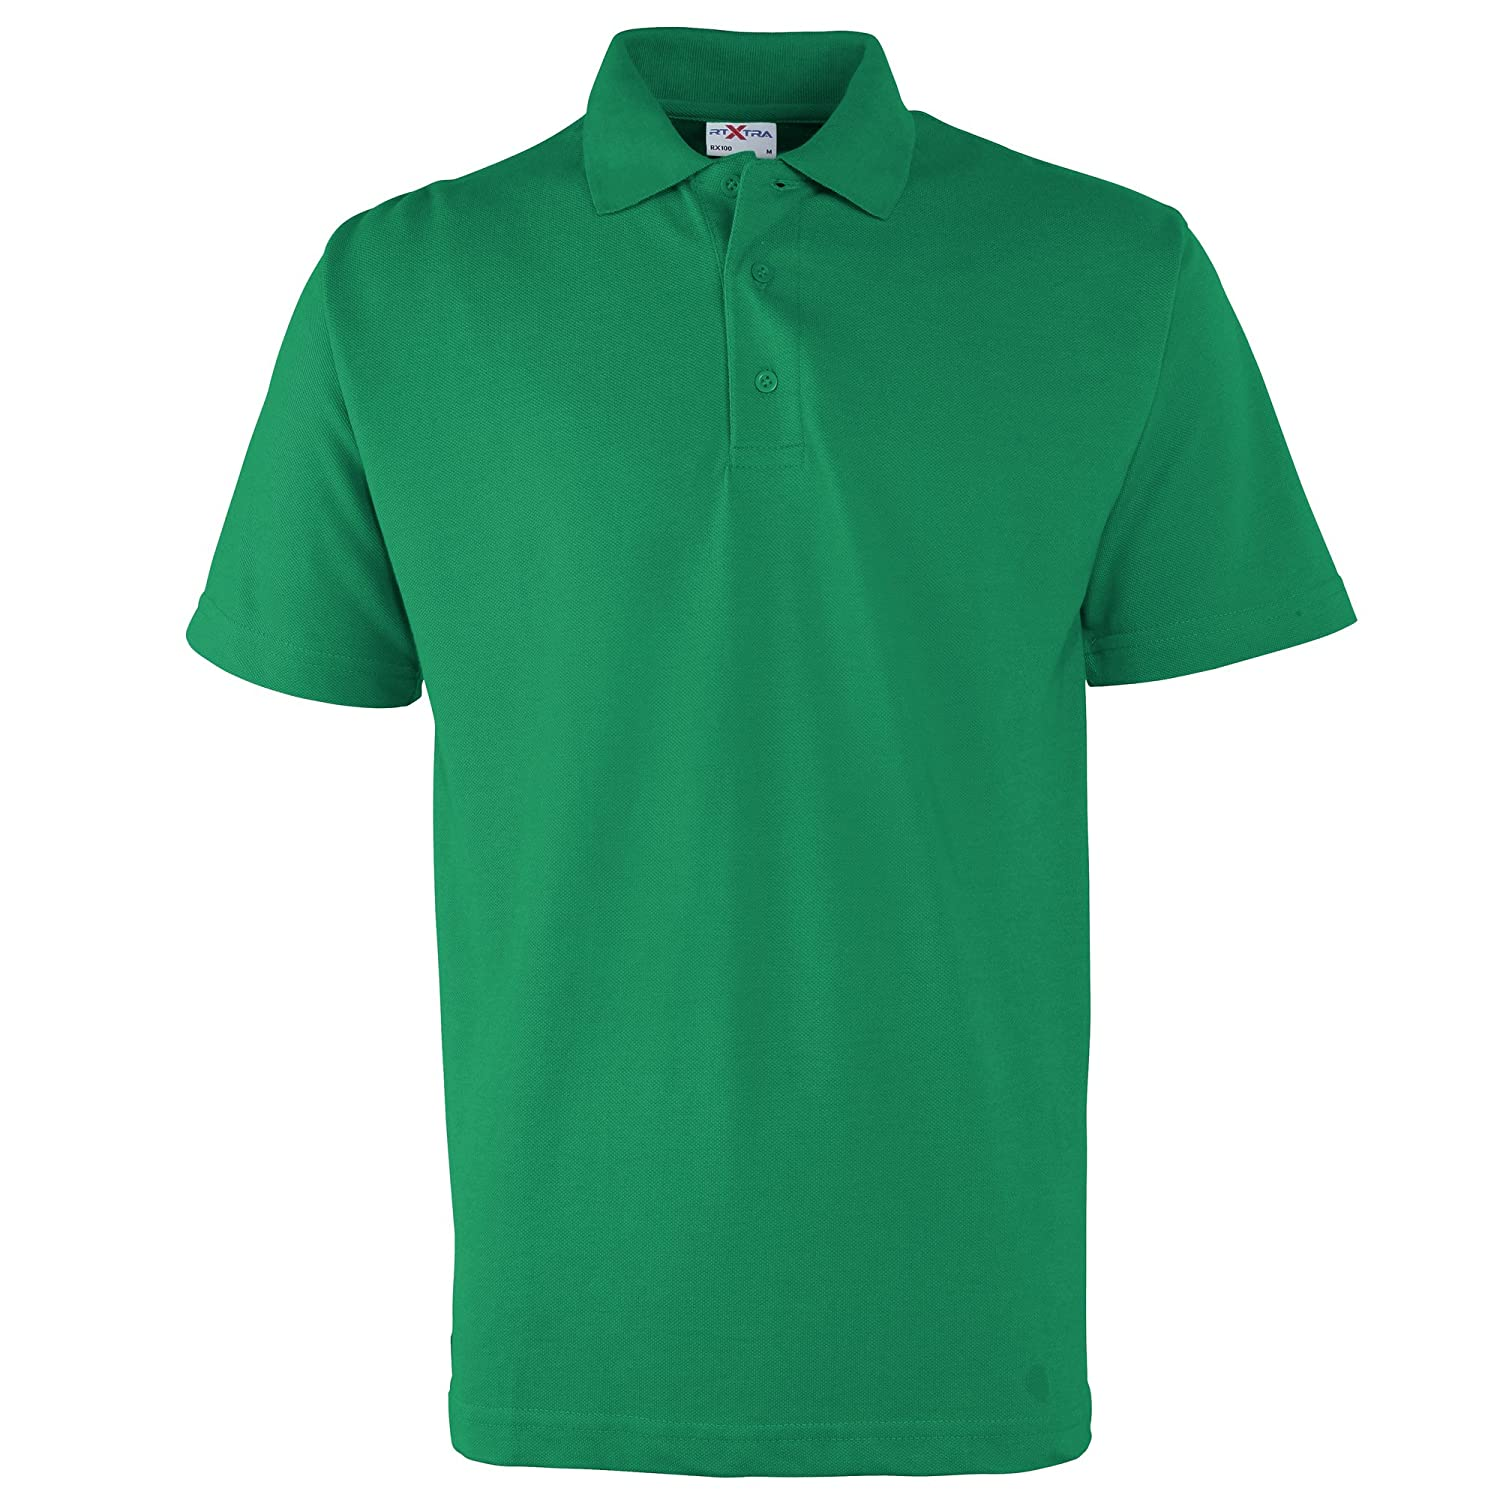 RTXtra Mens Pique Knit Classic Polo Shirt